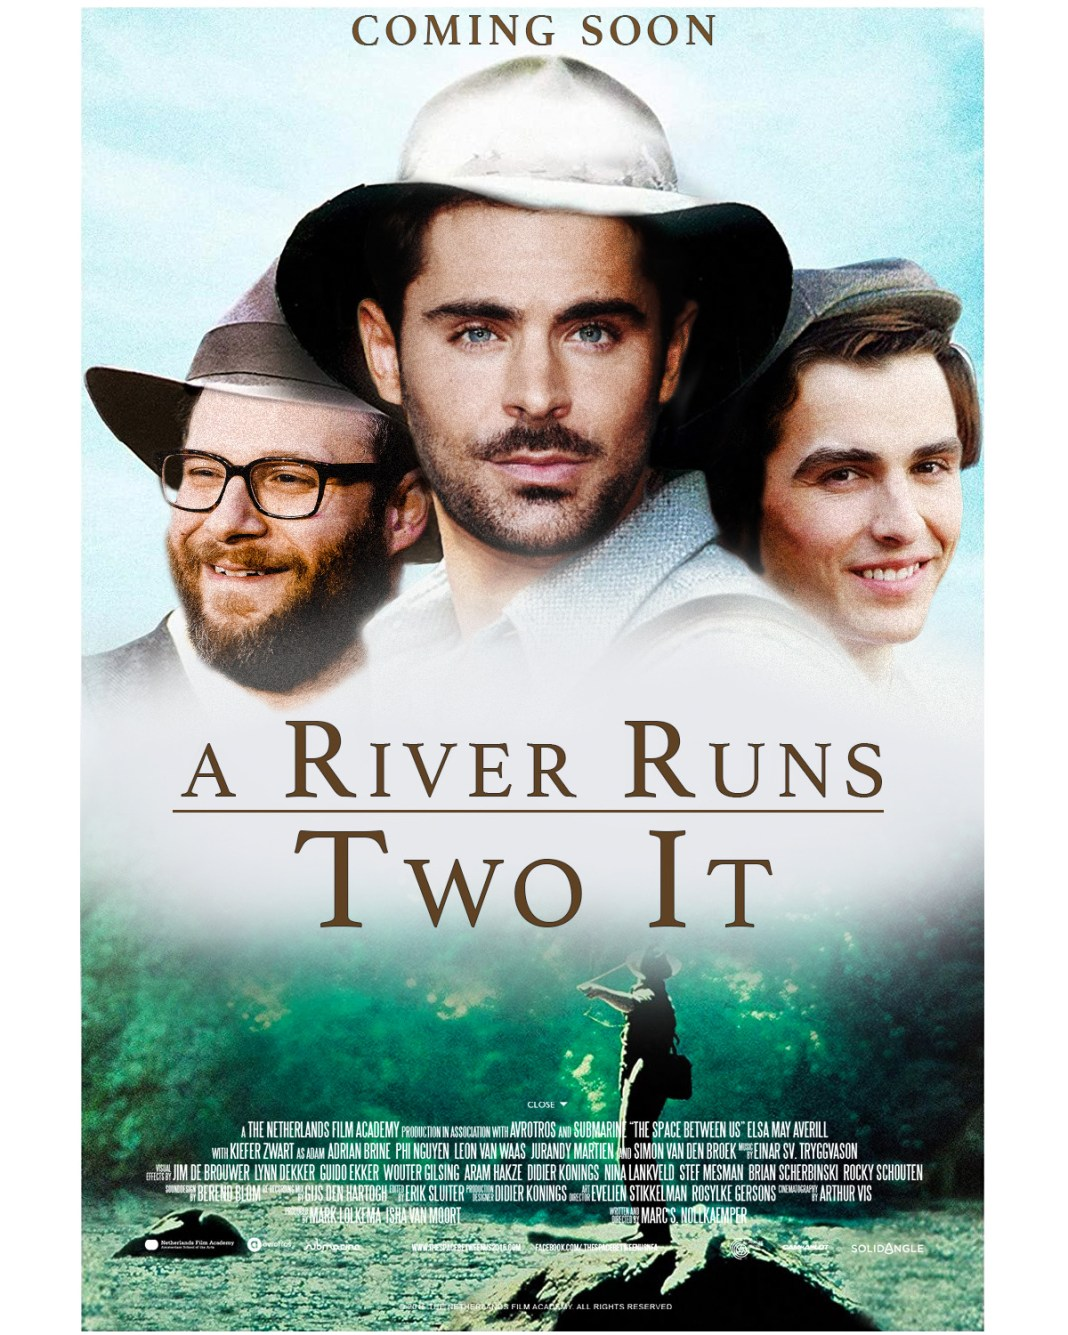 A river runs two it poster release